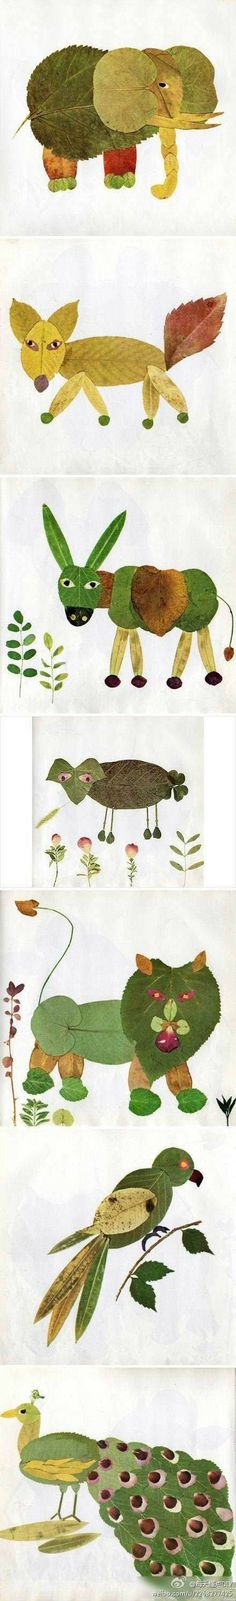 A list of wonderful Fall art activities which include elements such as color, texture, line and shape. These Fall art ideas are unique and fun! Fall Art Projects, Projects For Kids, Diy For Kids, Diy Projects, Kids Crafts, Fall Crafts, Leaf Crafts, Leaf Animals, Kids Animals